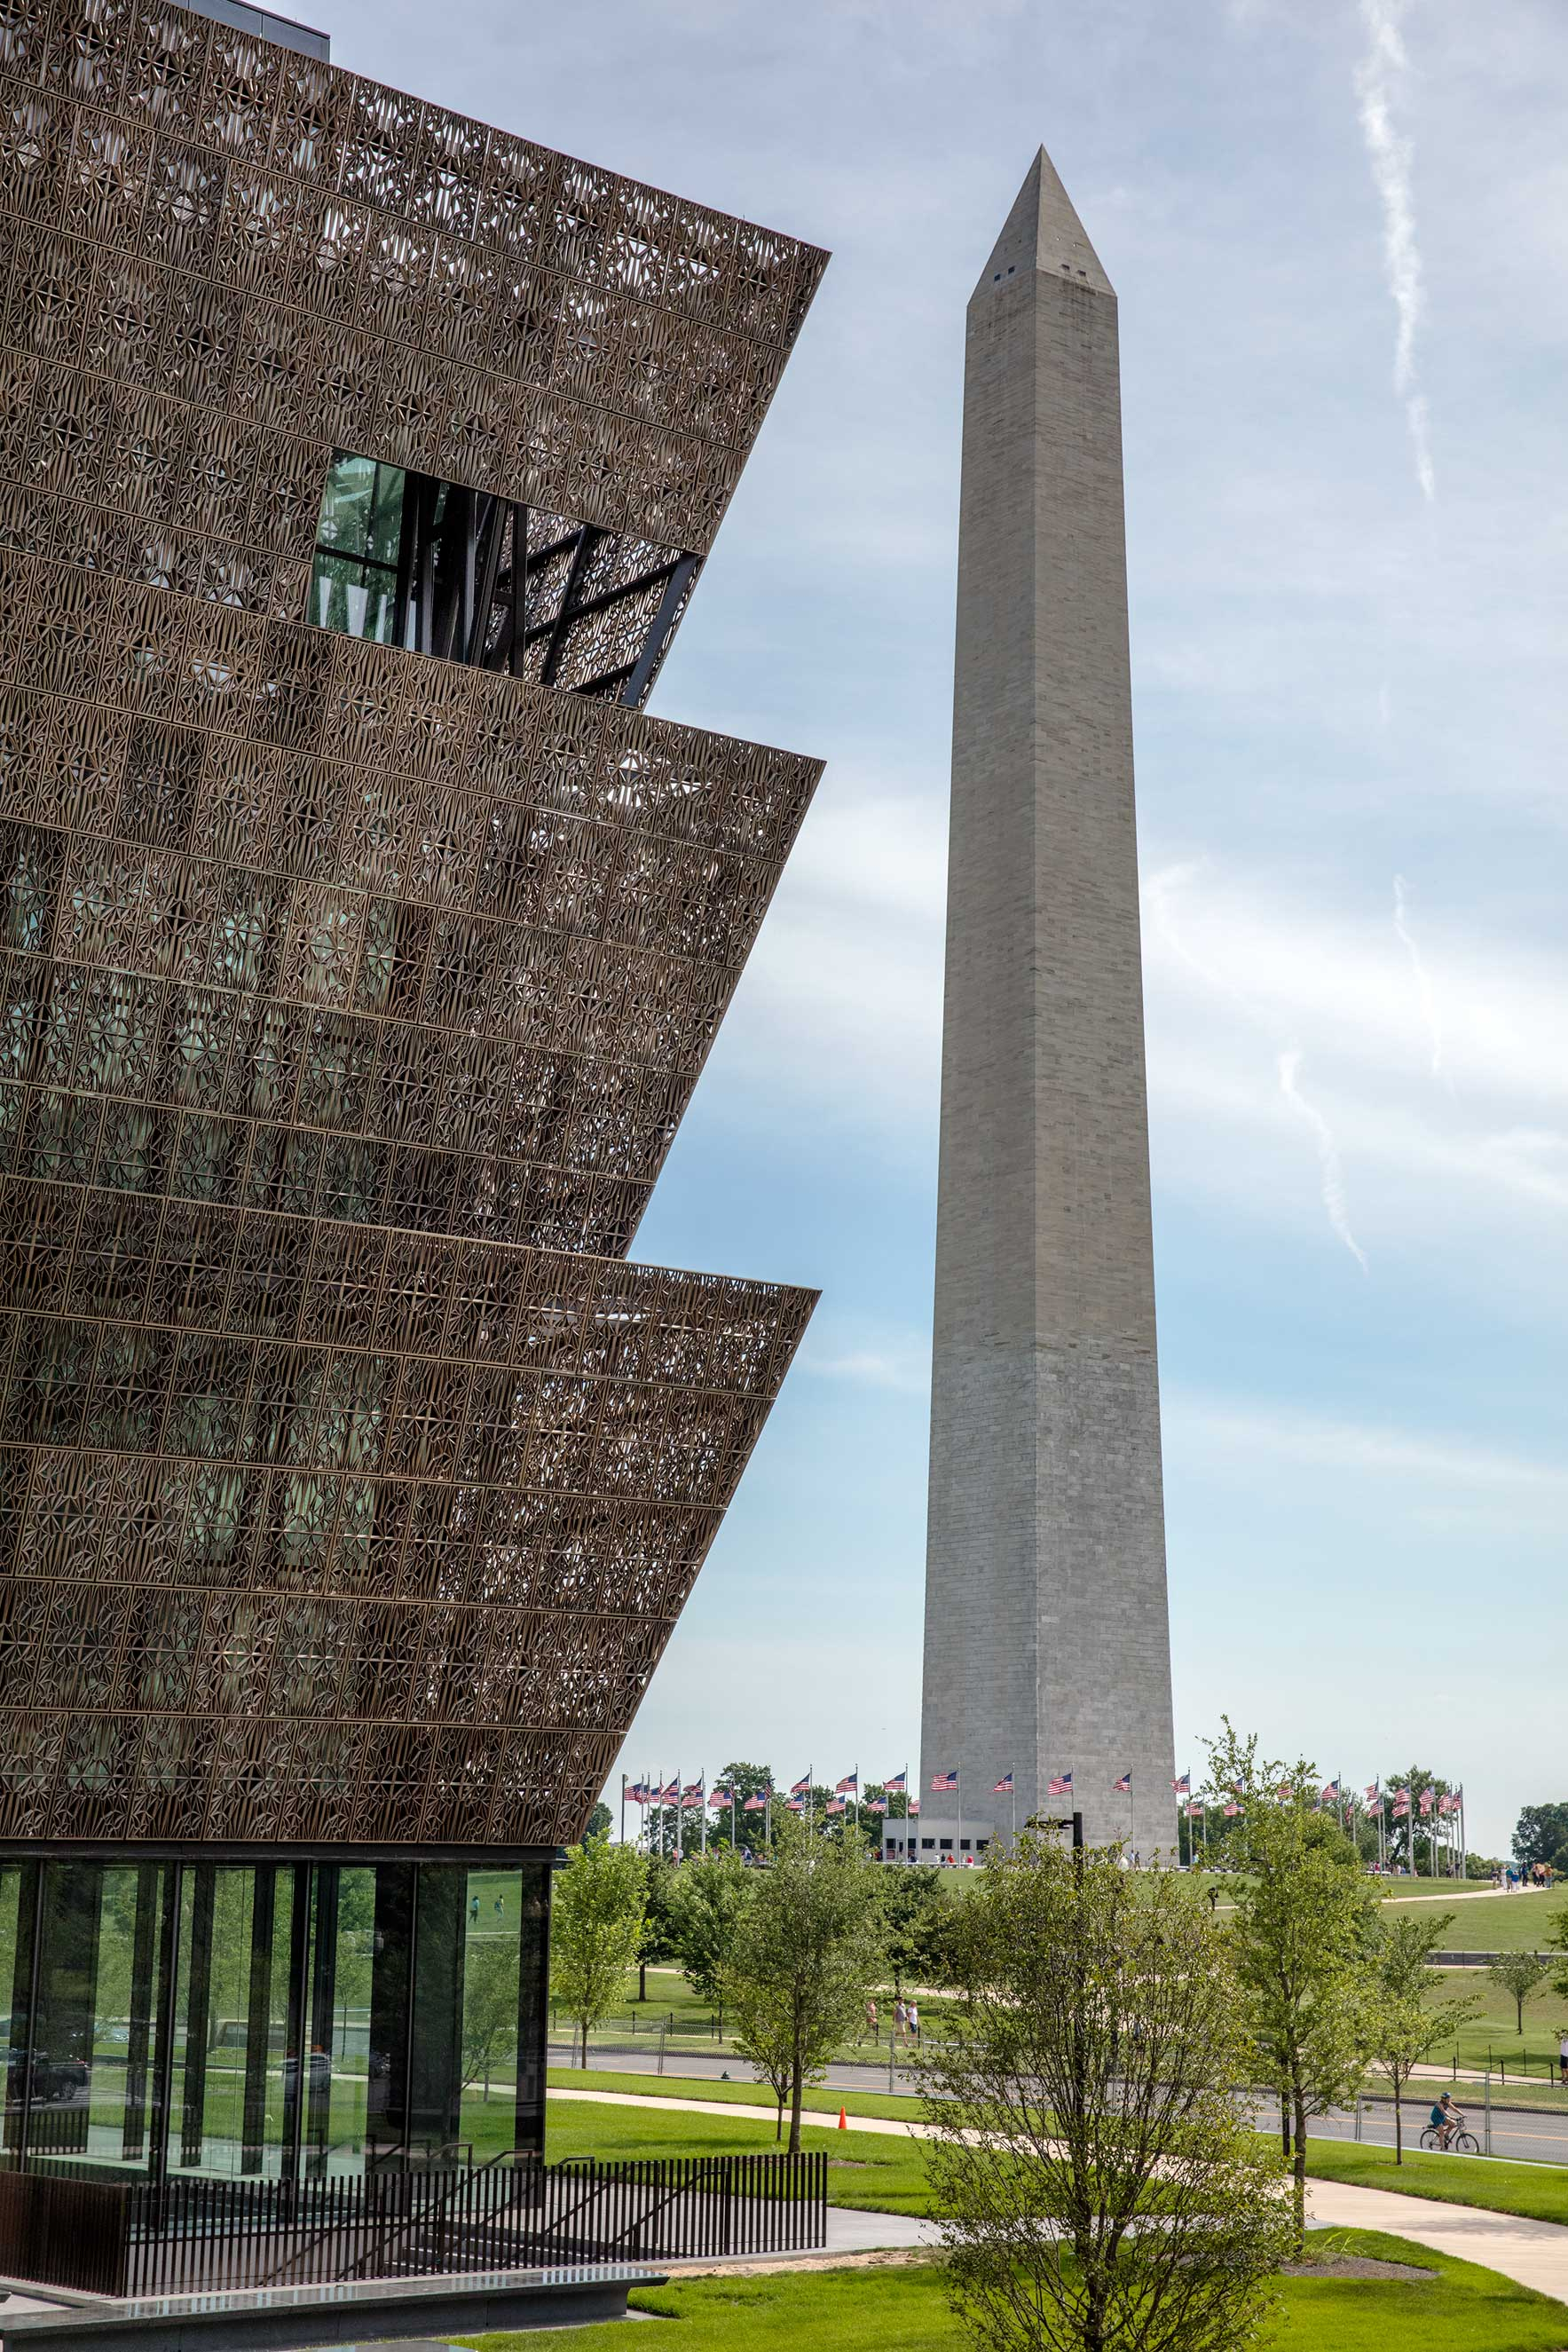 Exterior of the National Museum of African American History and Culture.